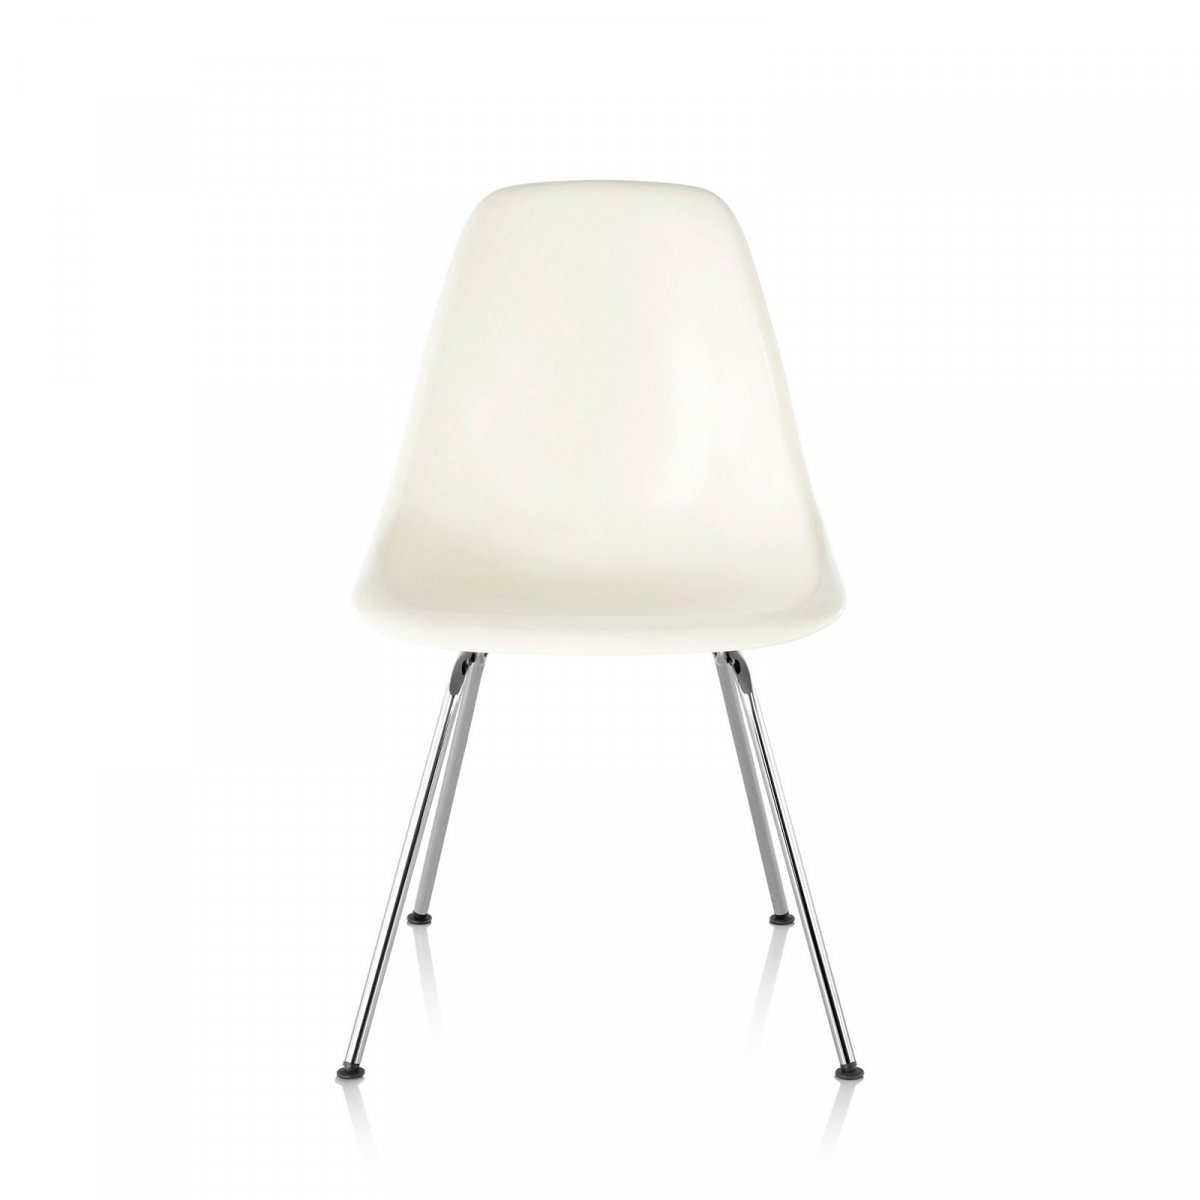 Eames Molded Plastic Side Chair 4-Leg Base, white, front view.